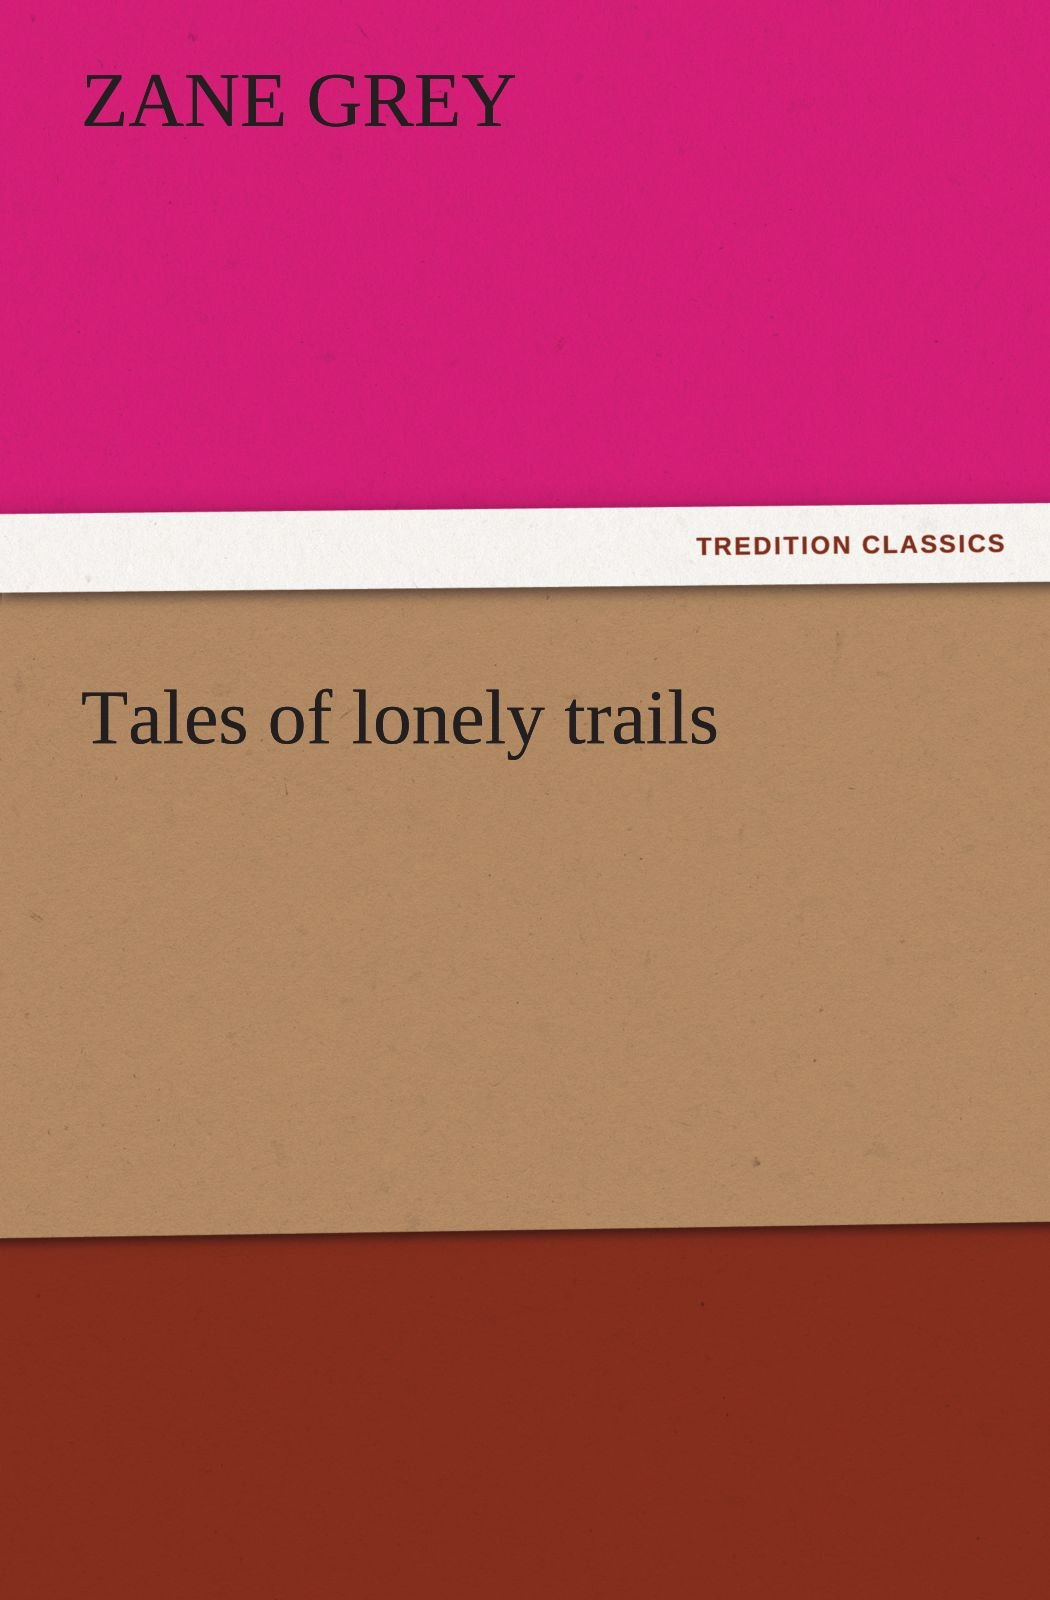 Tales of lonely trails (TREDITION CLASSICS) PDF